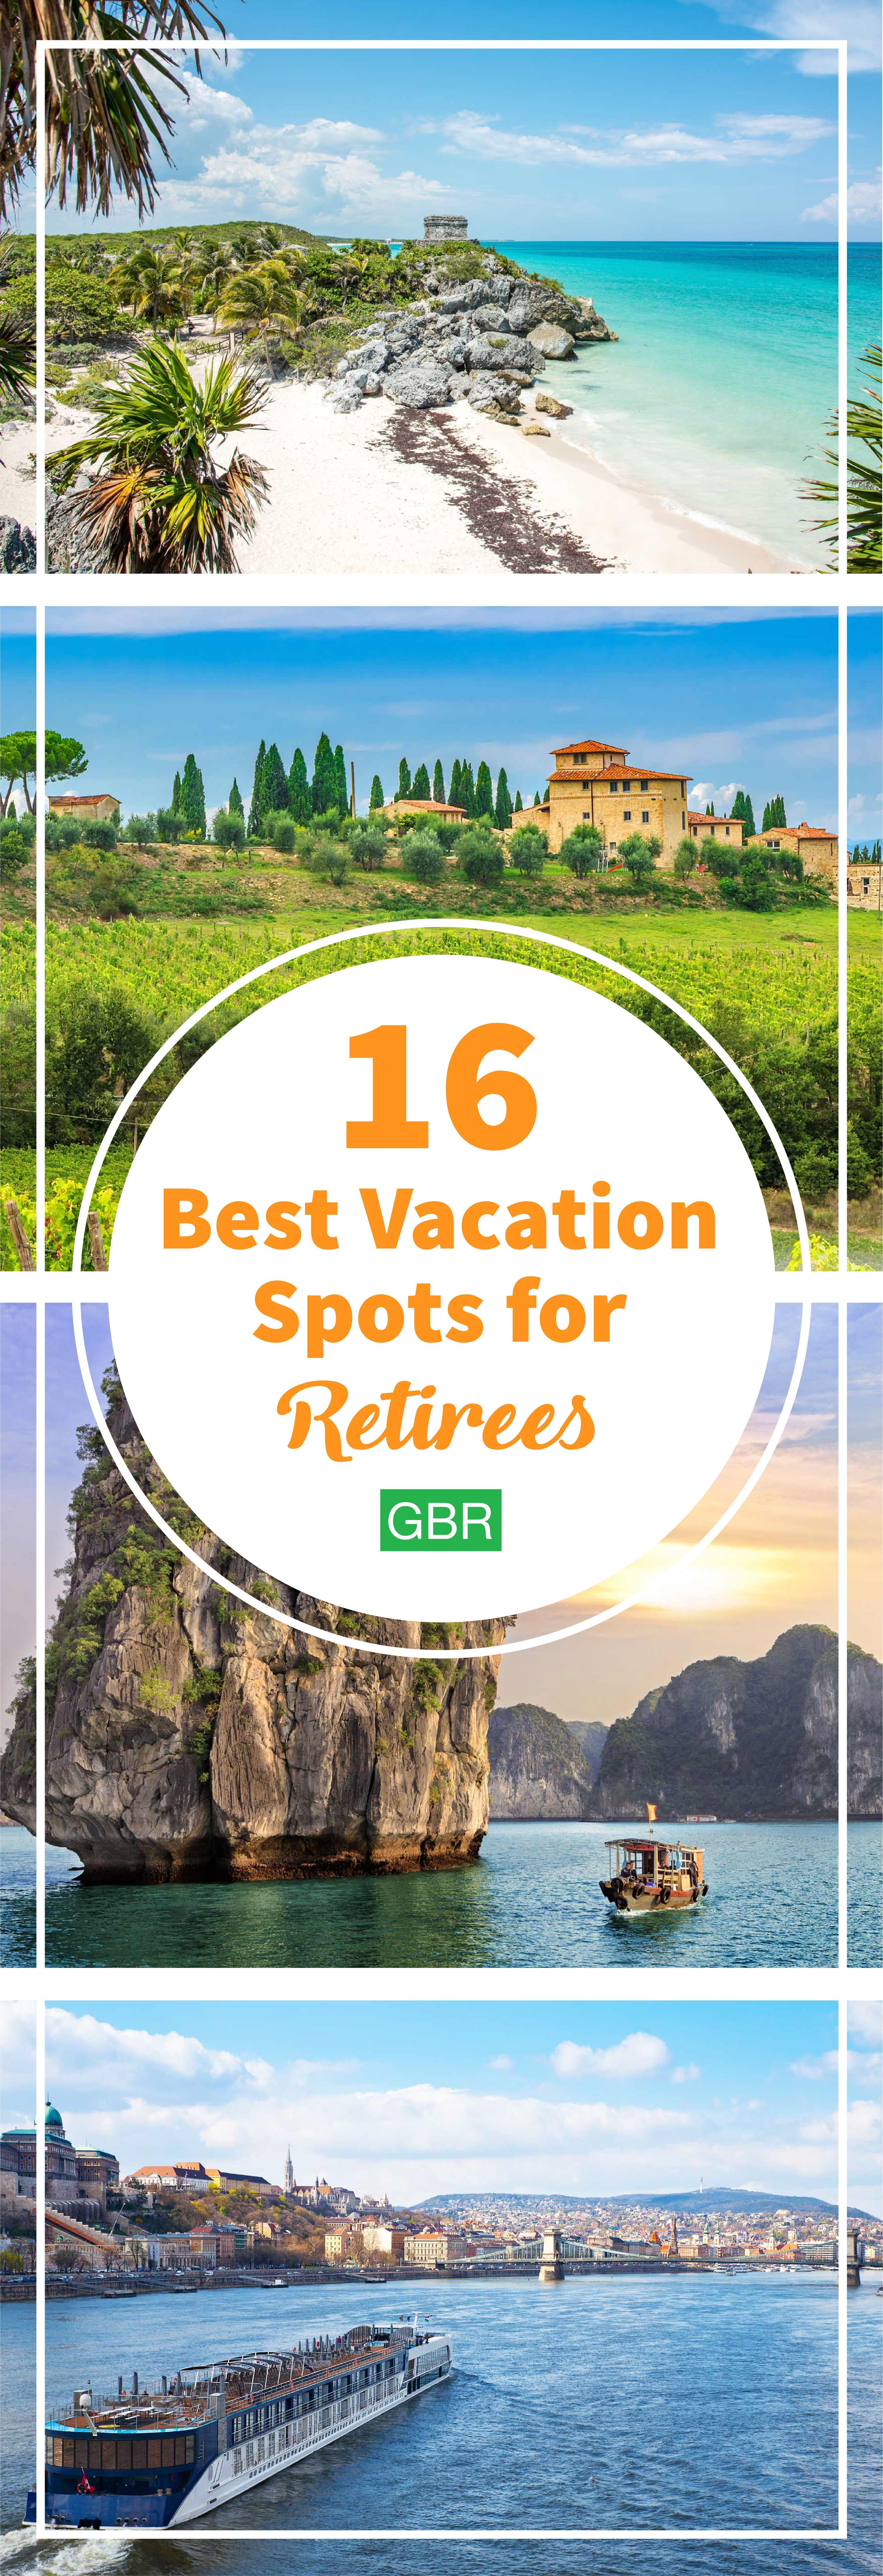 Try these awesome vacation spots where retirees can travel